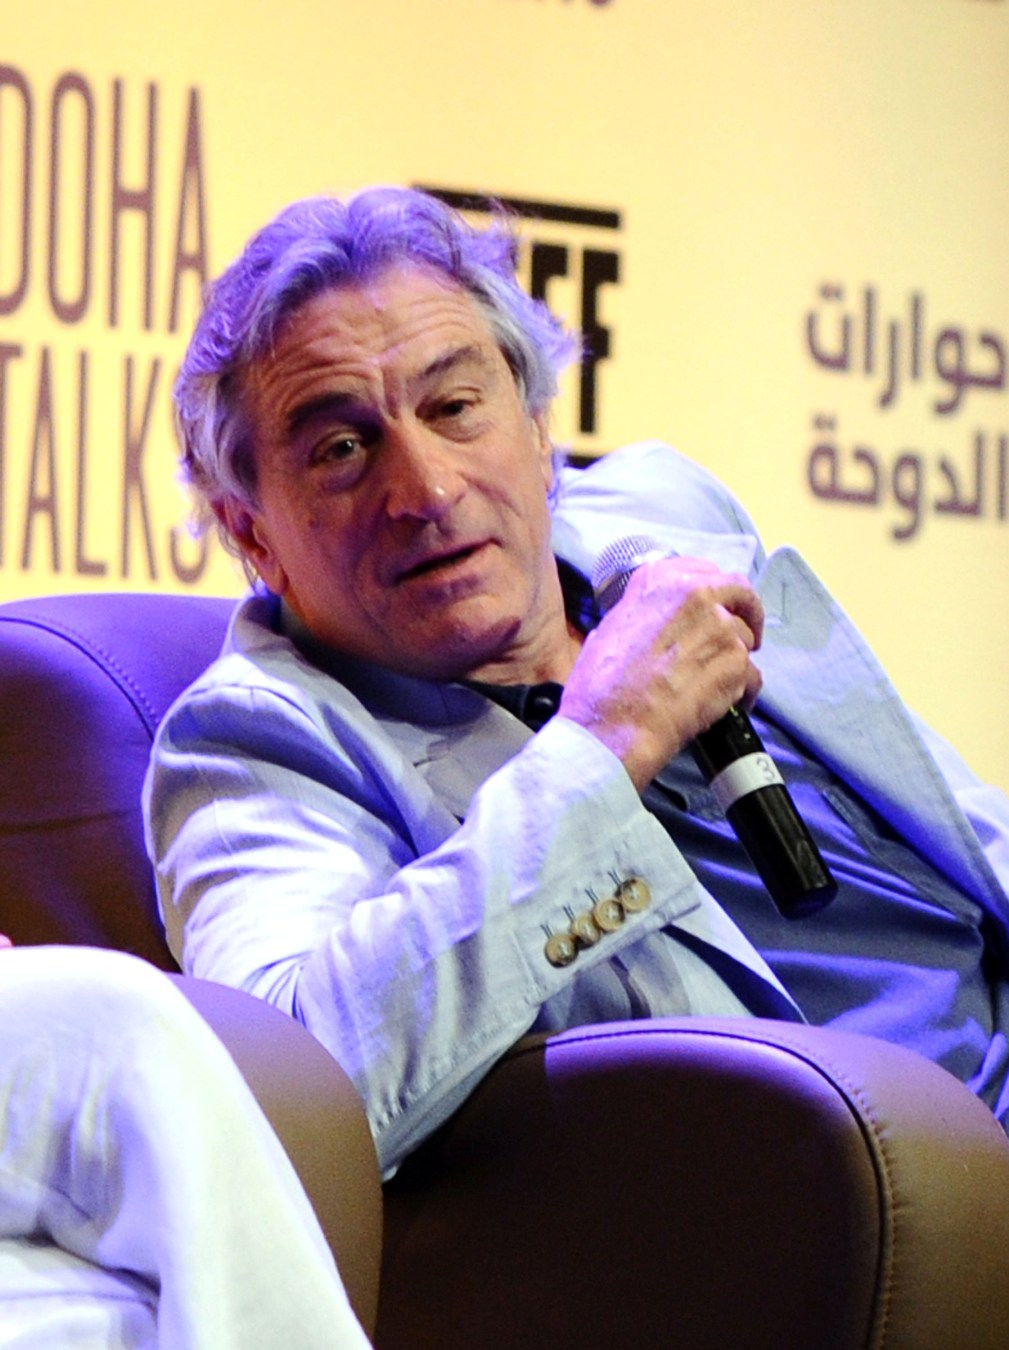 Robert De Niro To Receive Cecil B. Demille Award At 68th Annual Golden Globe® Awards On Sunday, January 16, 2011